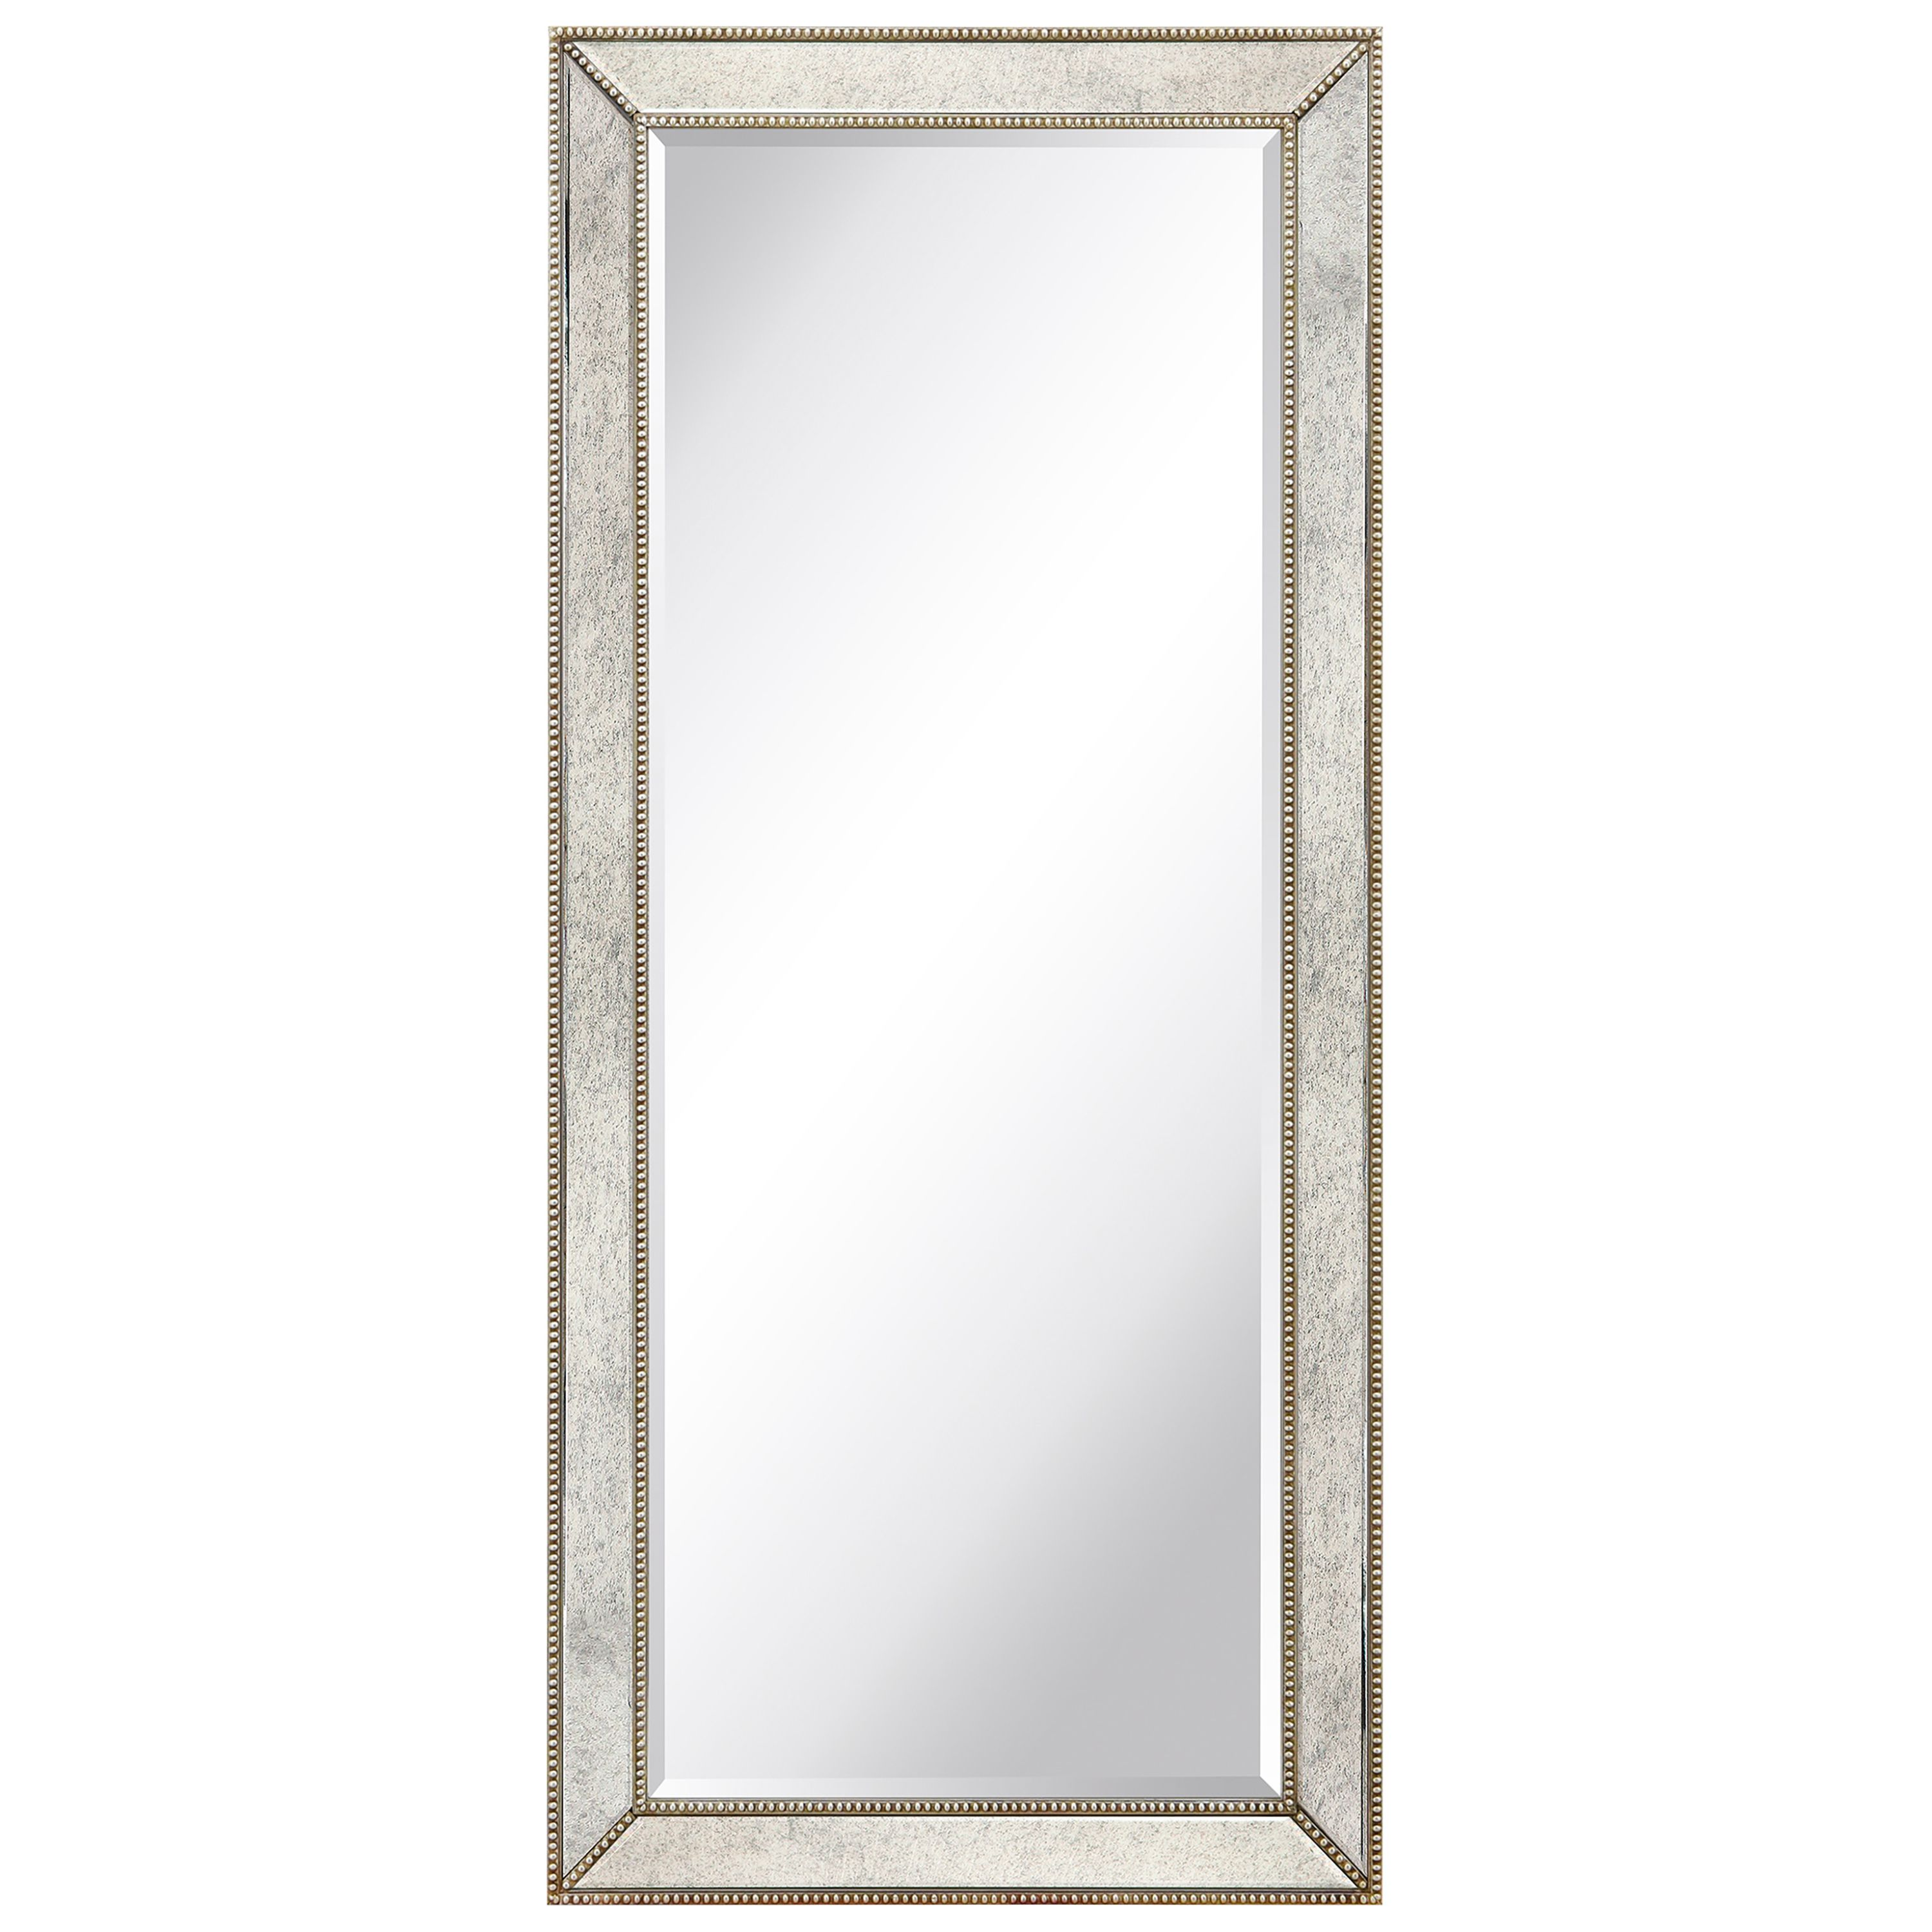 Empire Art Direct MOM-20210ANP-2454 24 x 54 in. Solid Wood Frame Covered Wall Mirror with Beveled Antique Mirror Panels